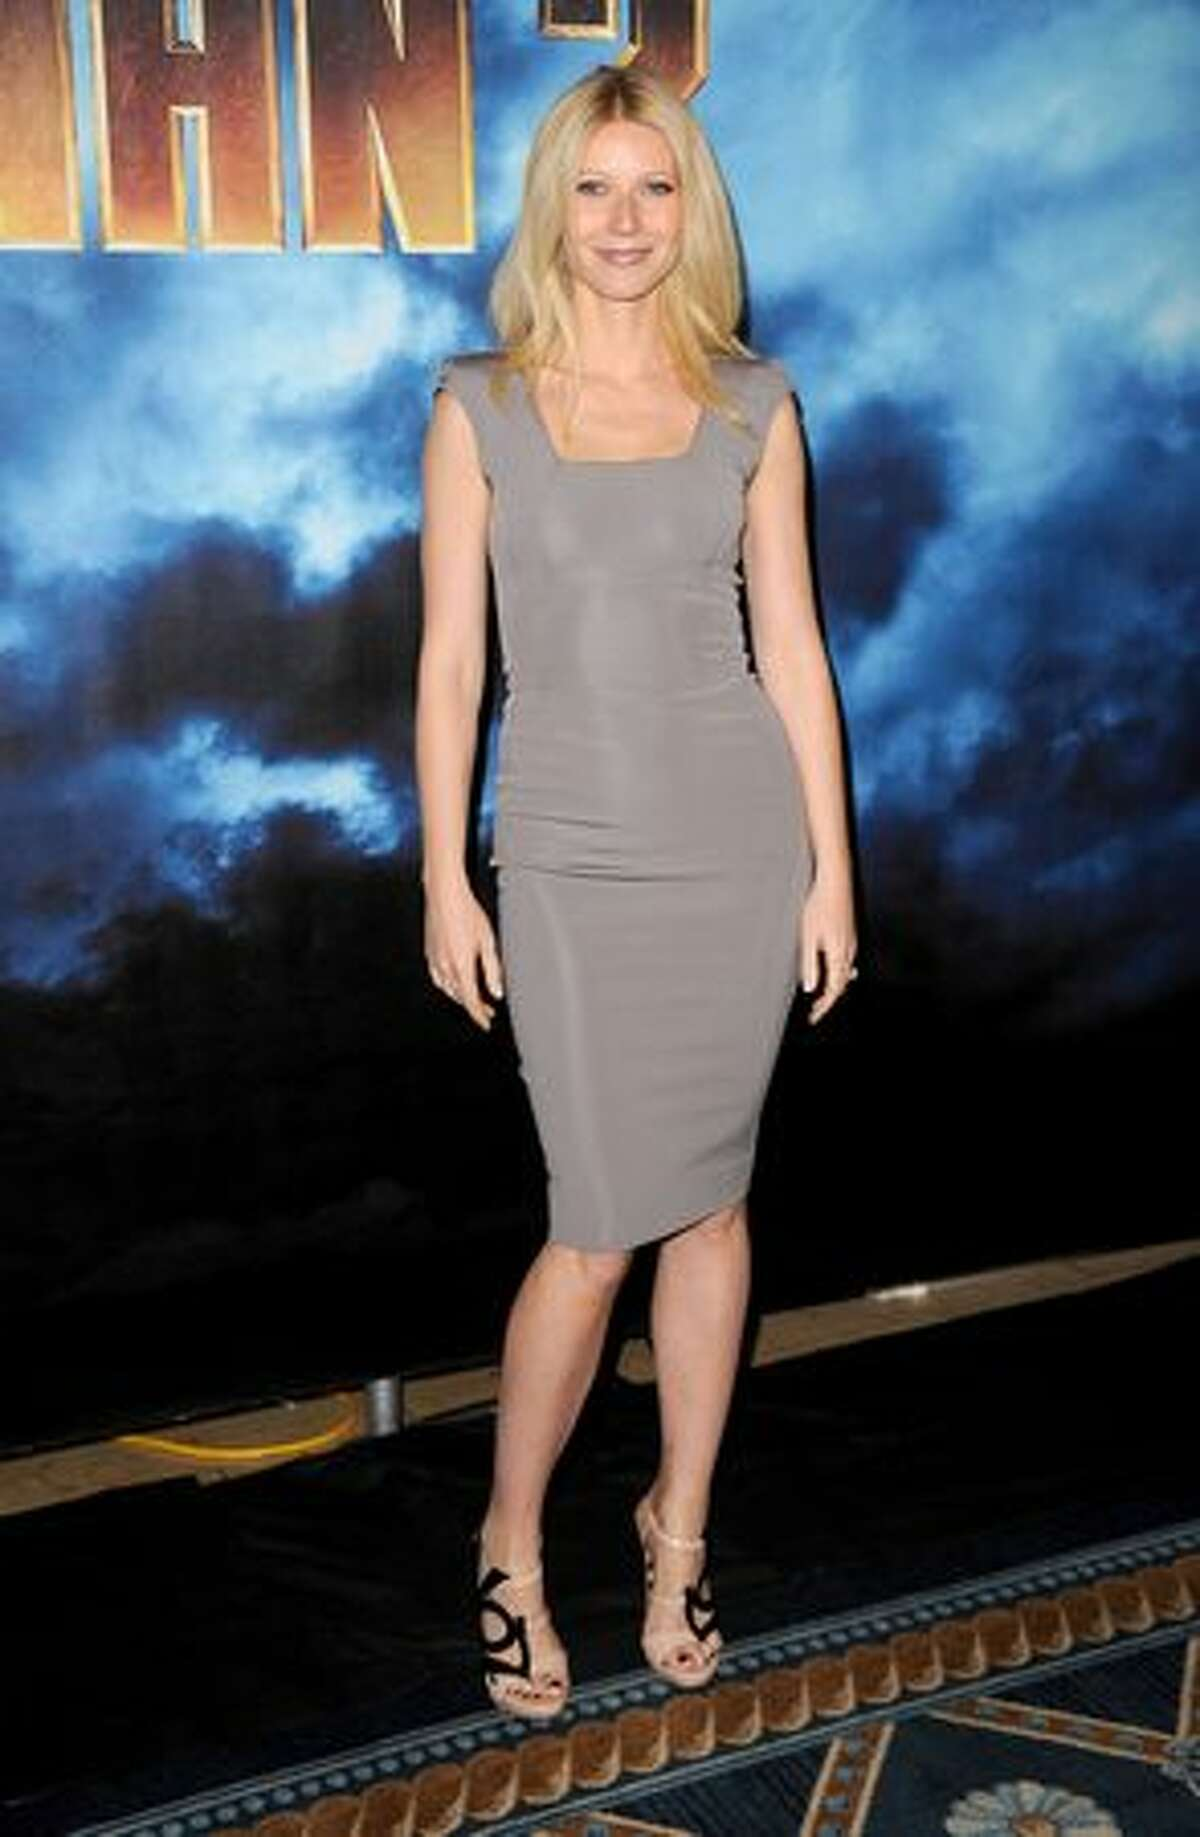 Actress Gwyneth Paltrow poses during Paramount Pictures & Marvel Entertainment's